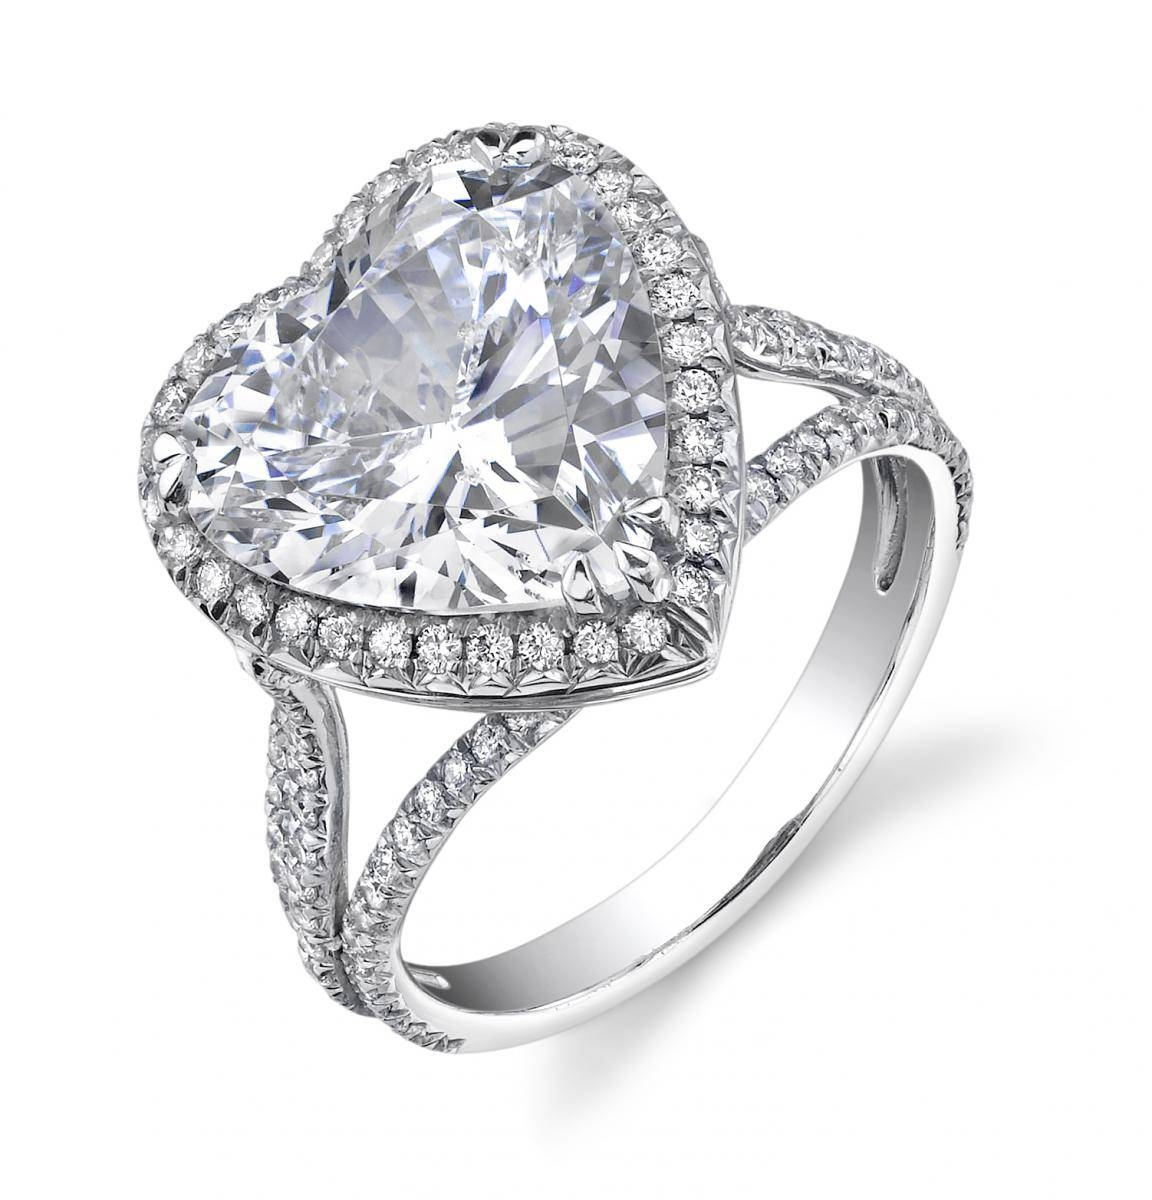 Show Your Lovegiving A Heart Shaped Engagement Ring For Heart Engagement Rings (View 10 of 15)